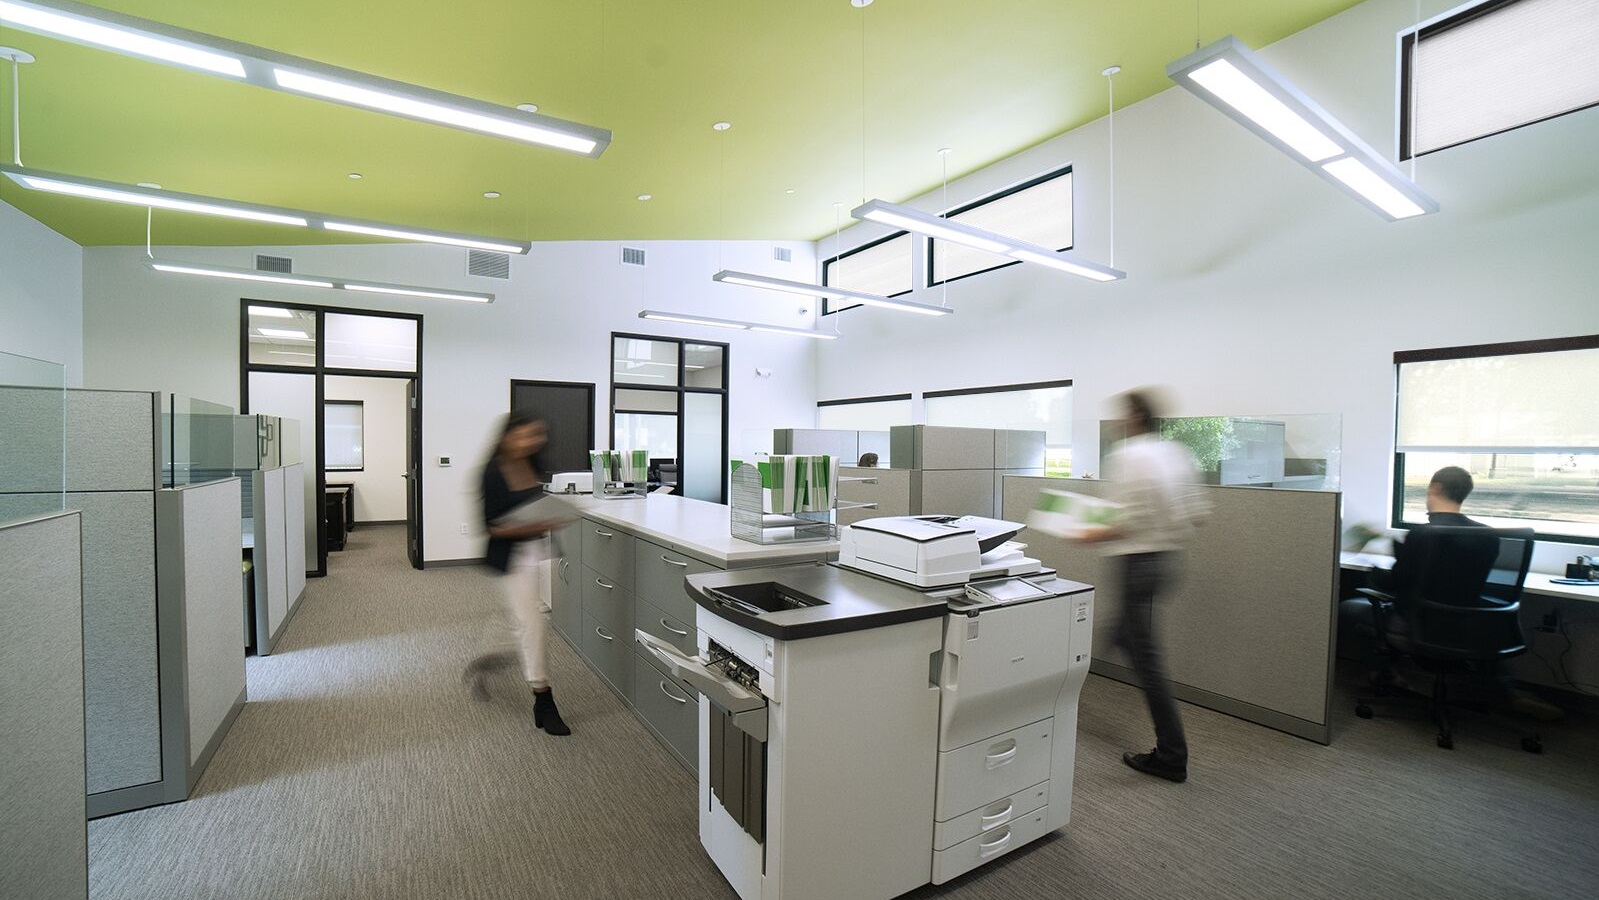 Interiors - Designing spaces that positively affect the way people live, work, and play.